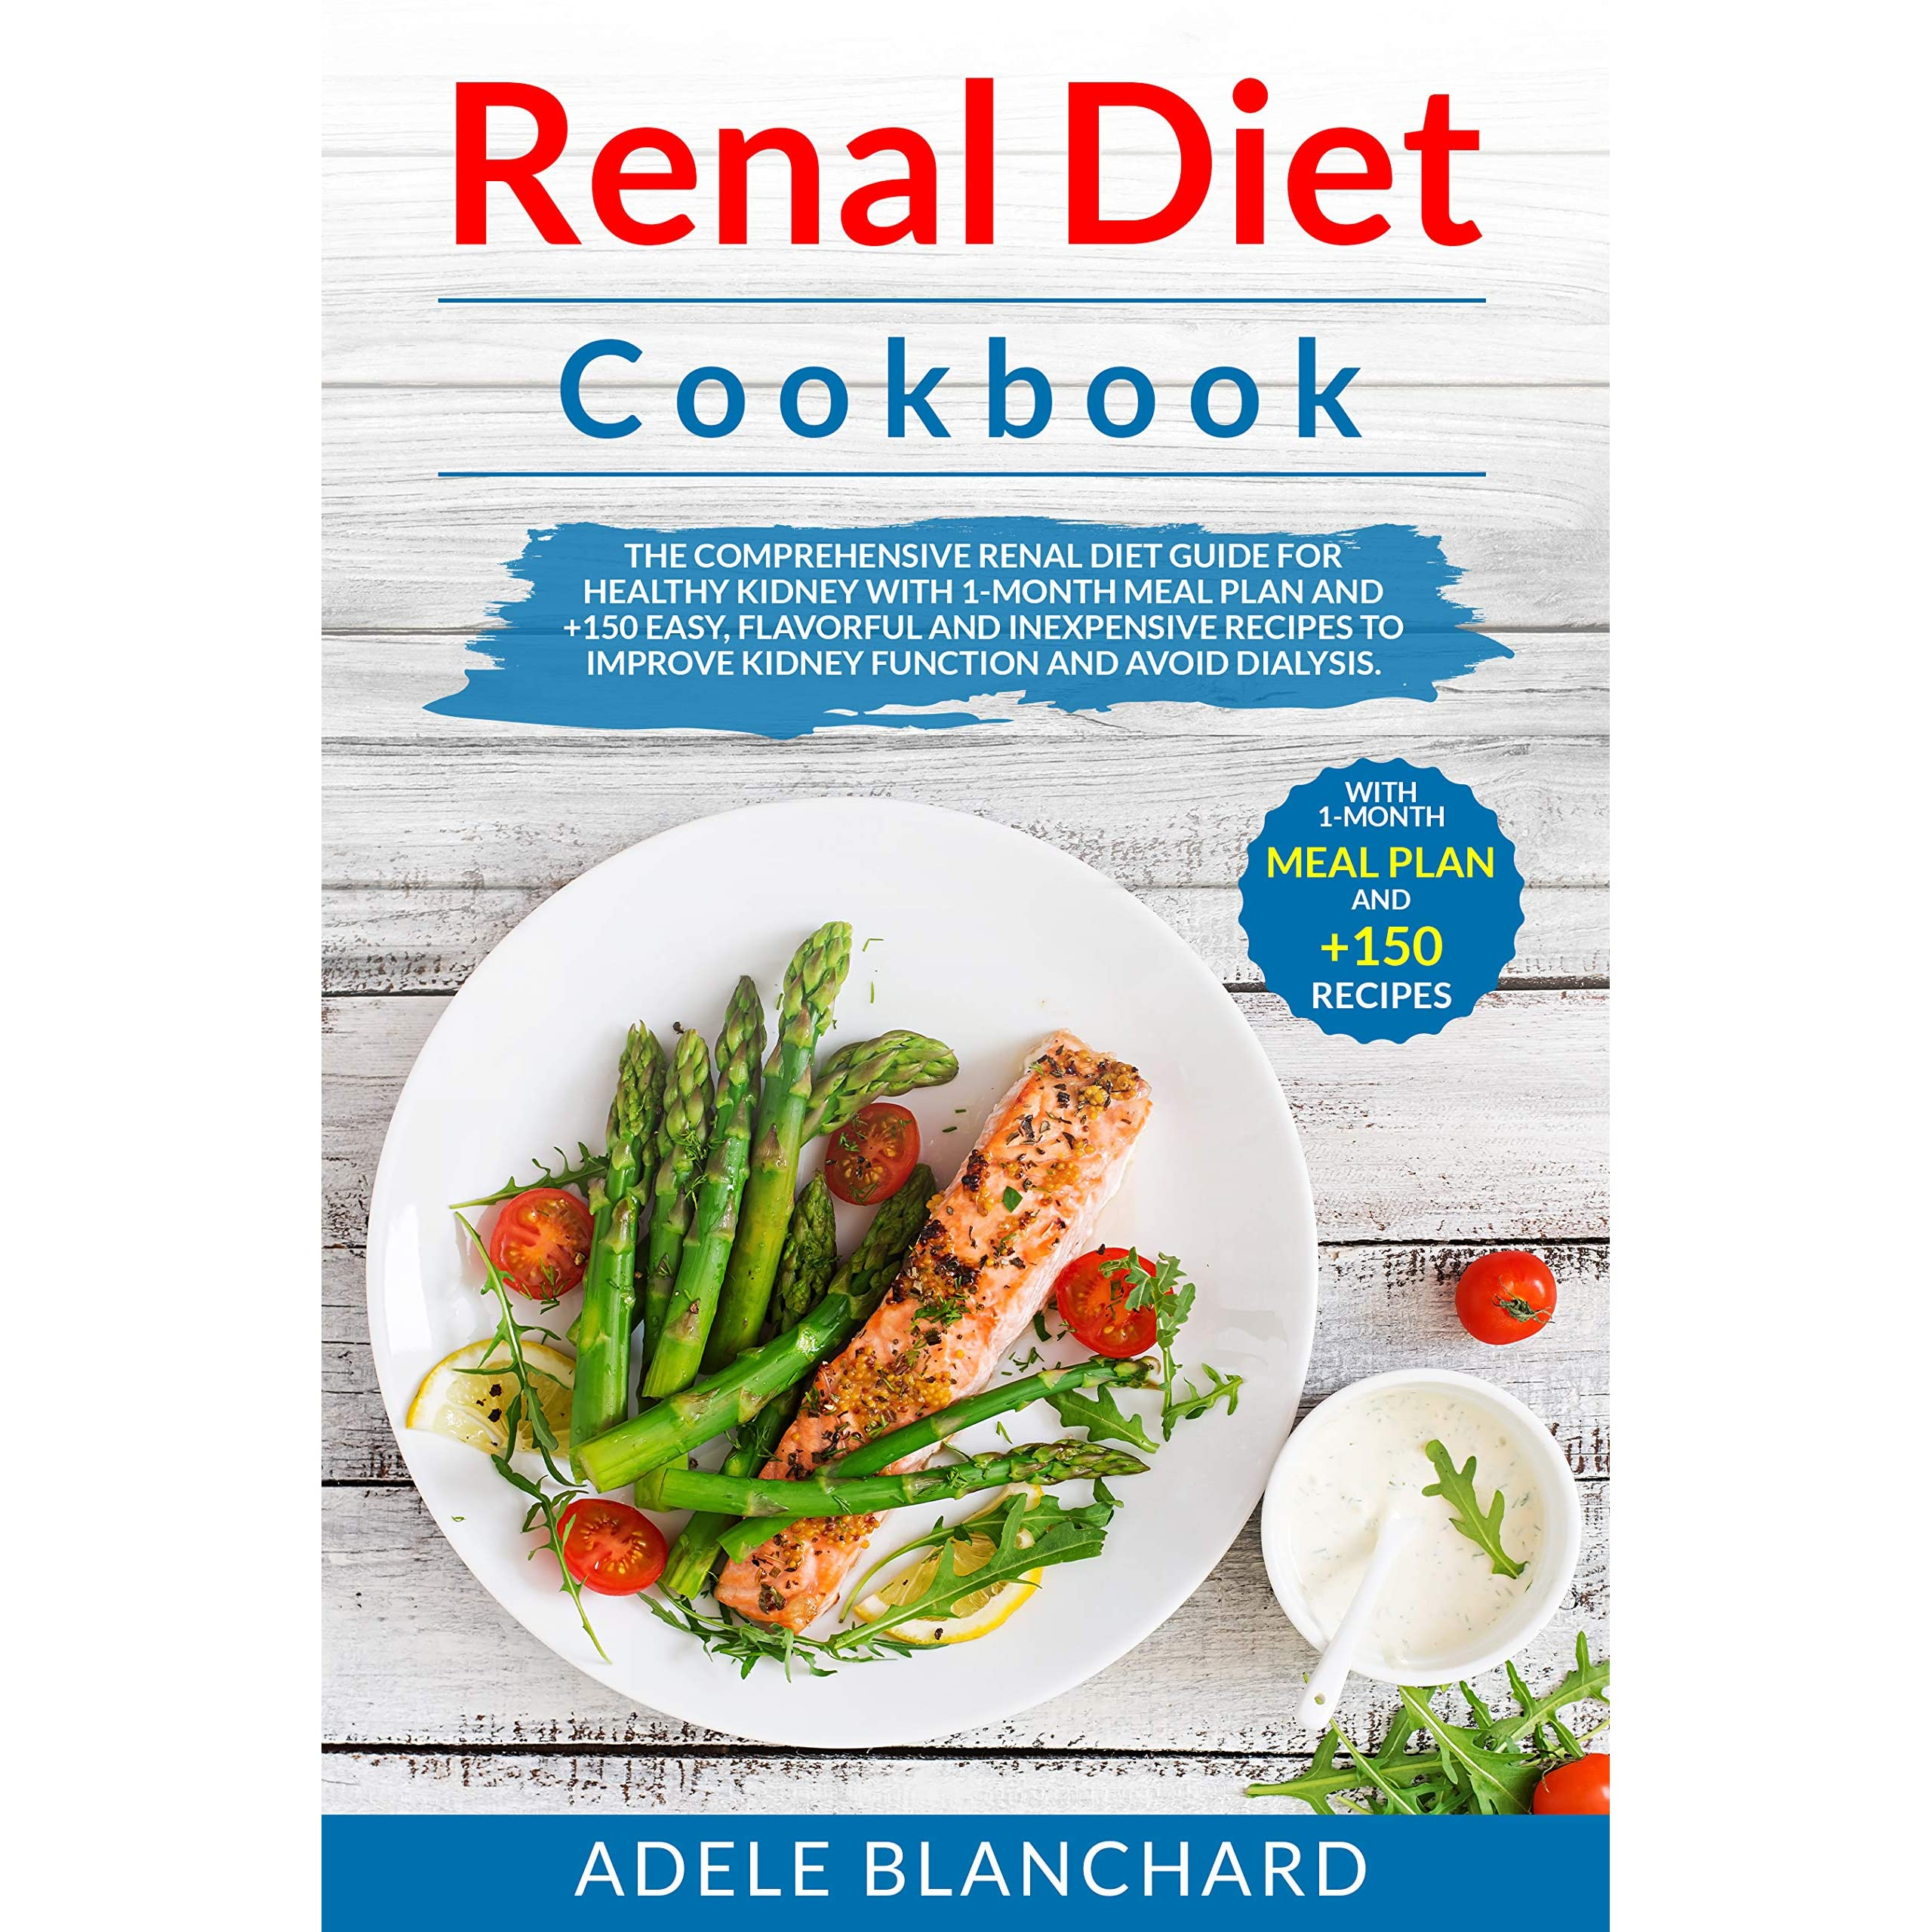 Renal Diet Cookbook The Comprehensive Renal Diet Guide For Healthy Kidneys With 1 Month Meal Plan And 150 Easy Flavorful And Inexpensive Recipes To Improve Kidney Function And Avoid Dialysis By Adele Blanchard